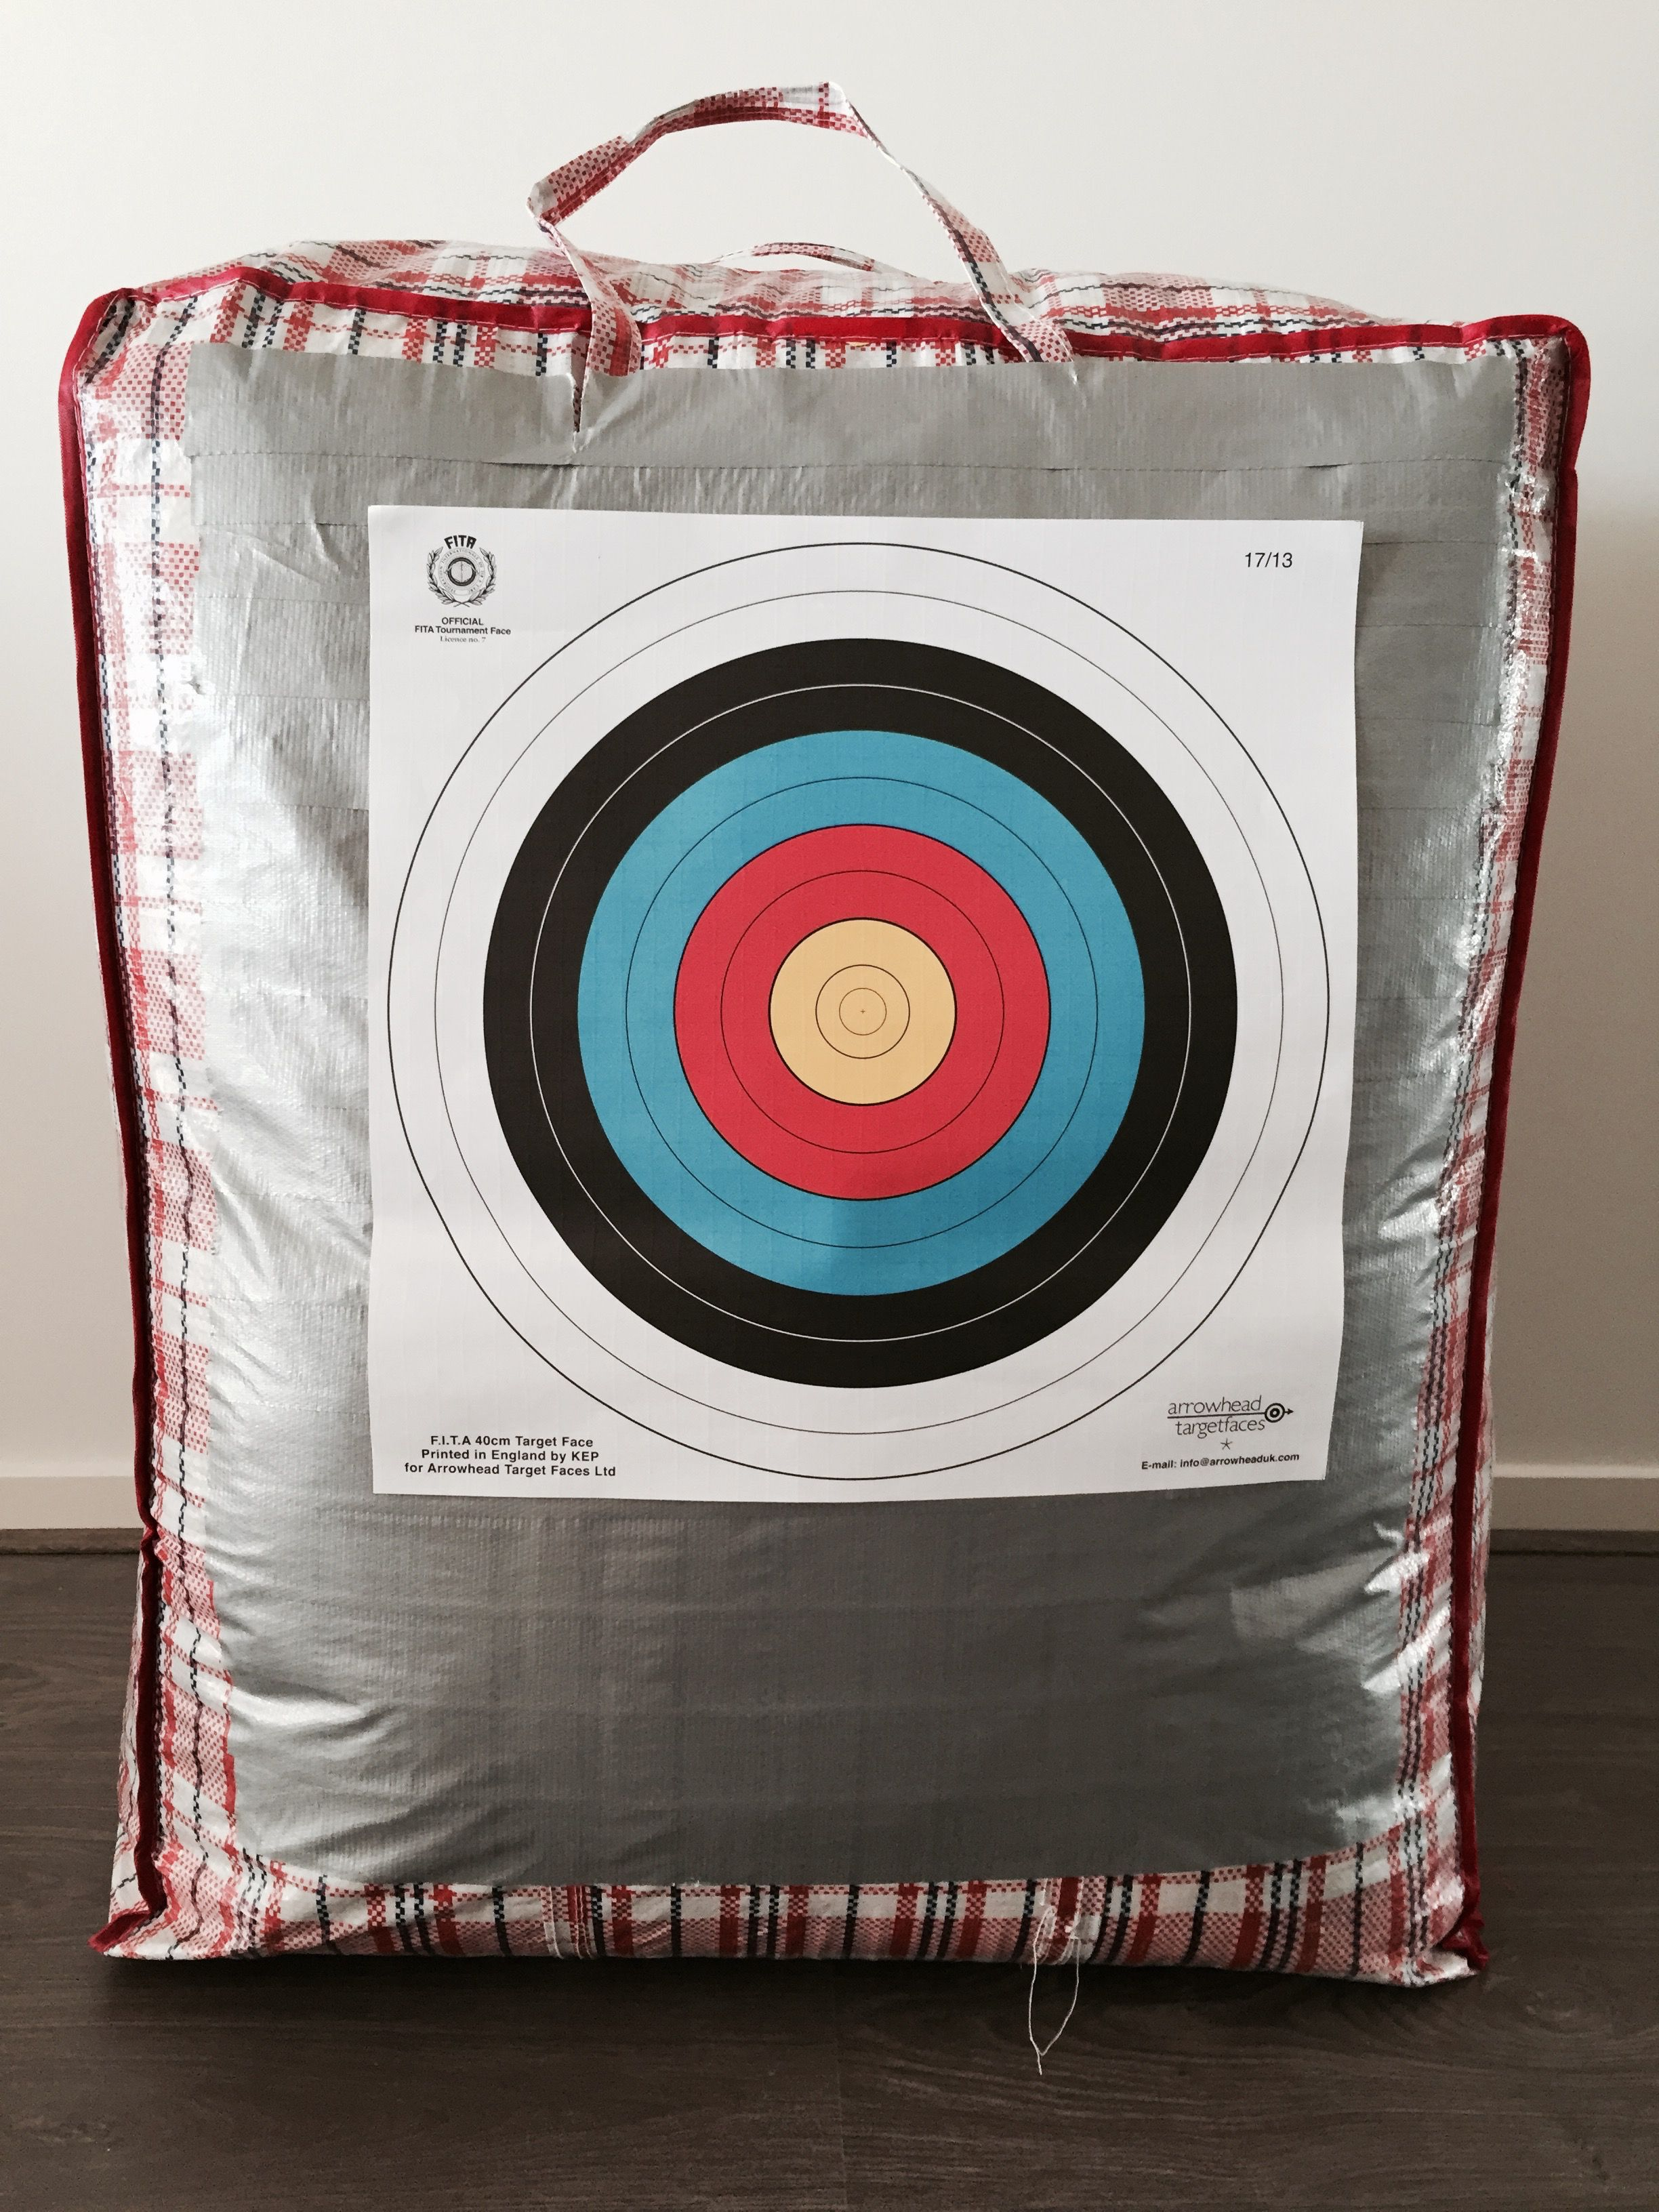 Homemade Archery Butt Made From Large Stripy Bag Stuffed With